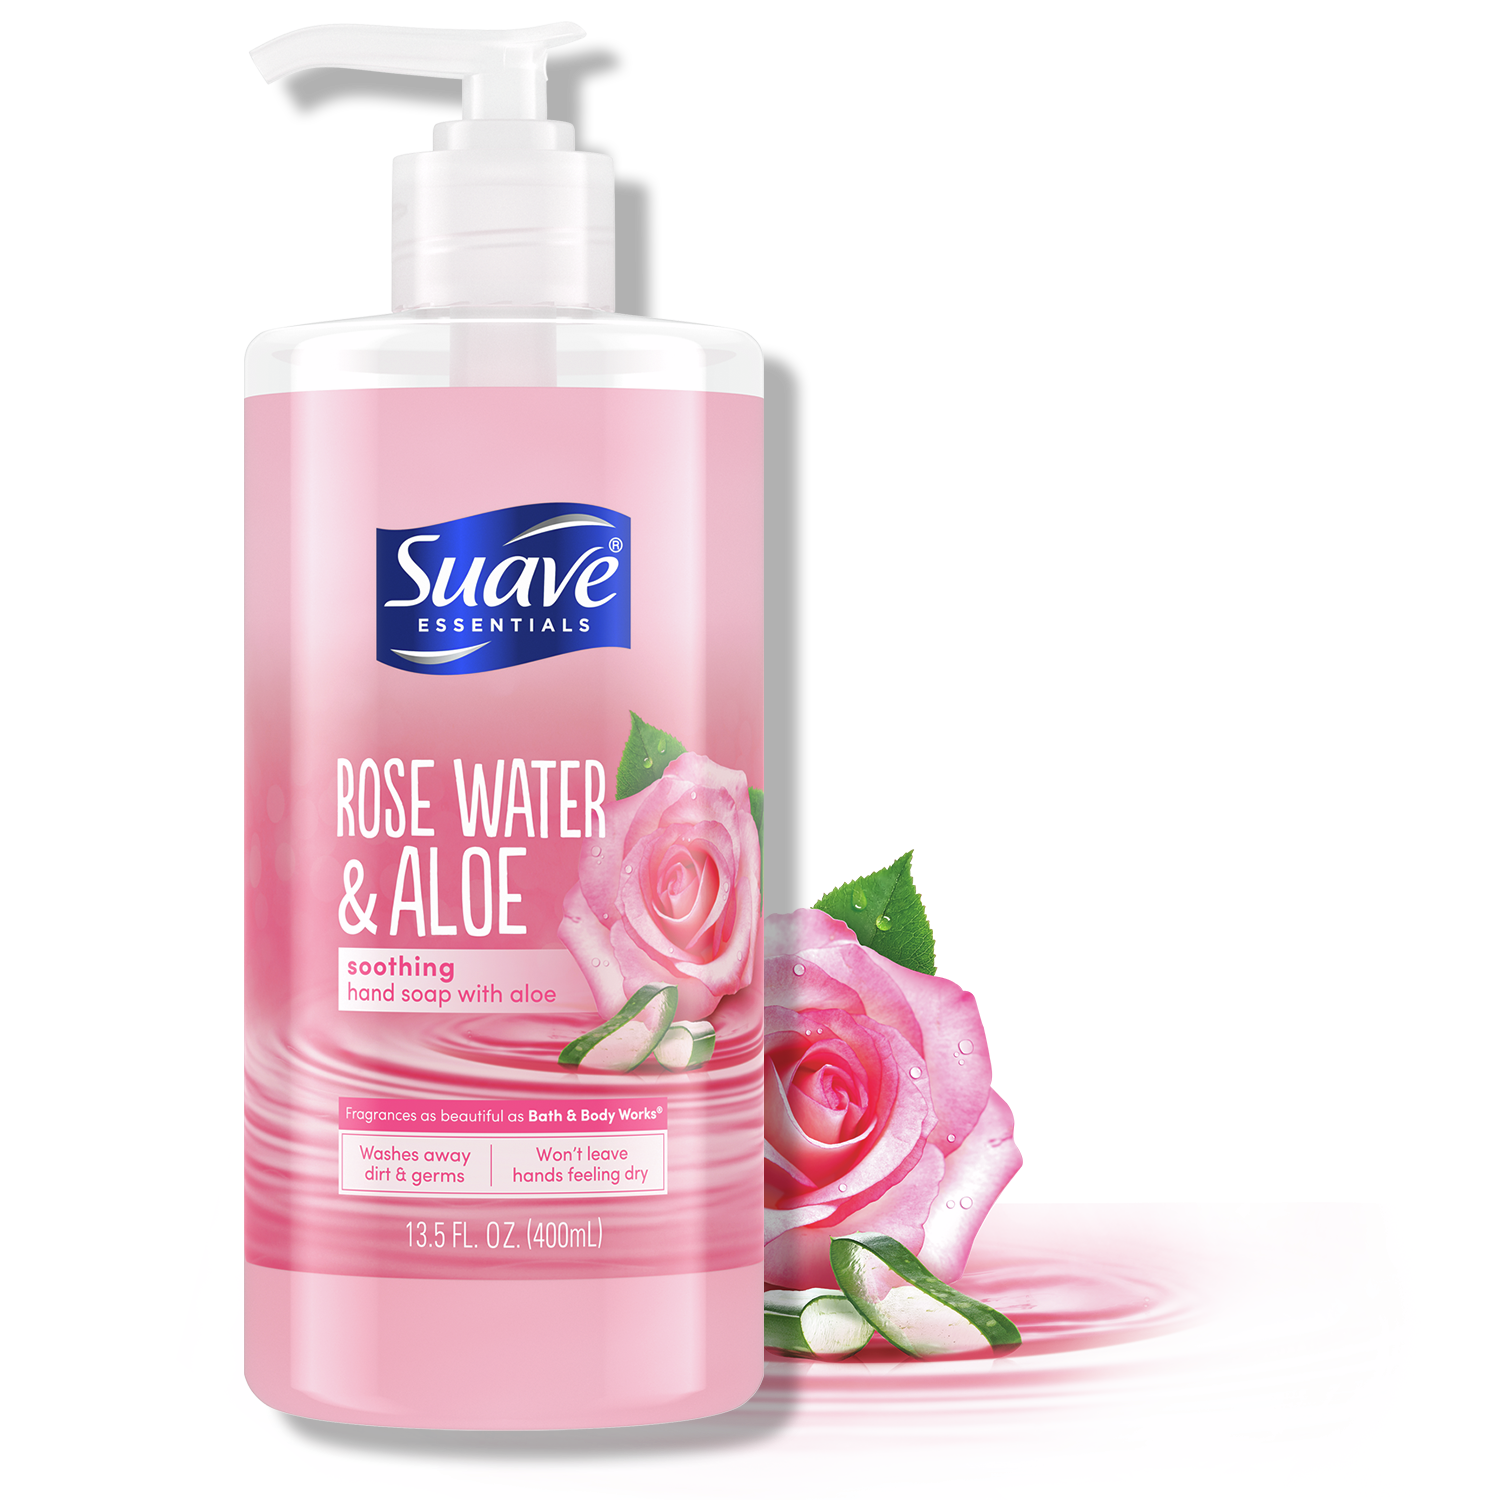 Suave Hand Soap Essentials Rose Water Aloe Soothing 13.5FL